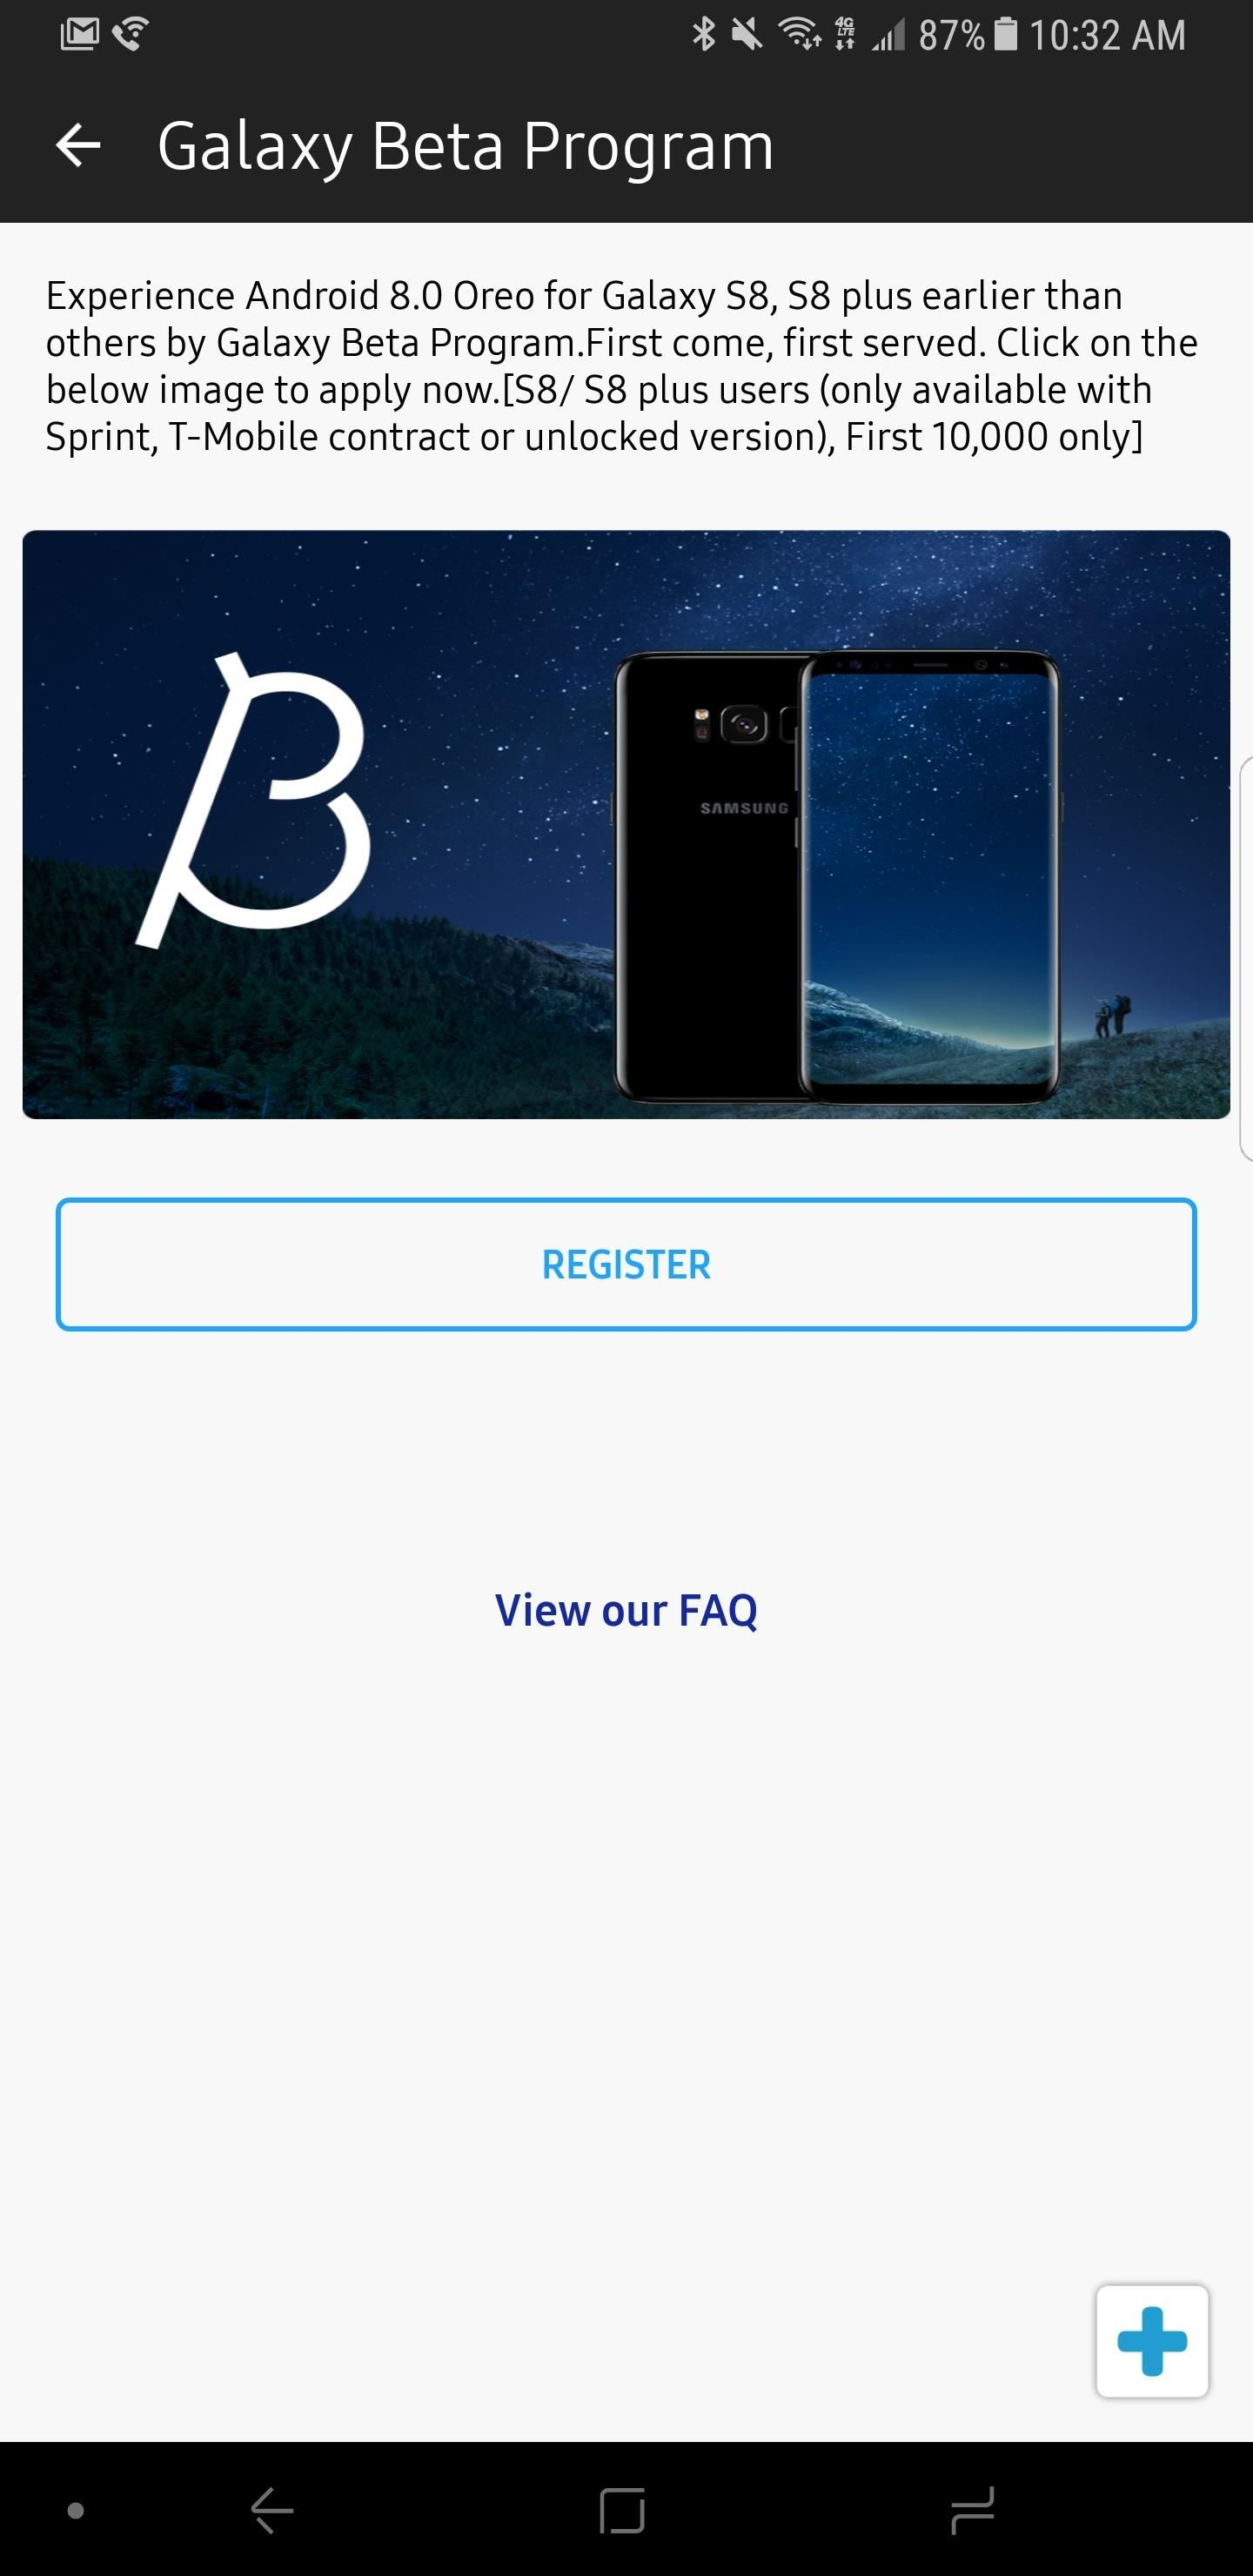 The Official One UI Beta Rolls Out For The Galaxy S9 - How To Get It